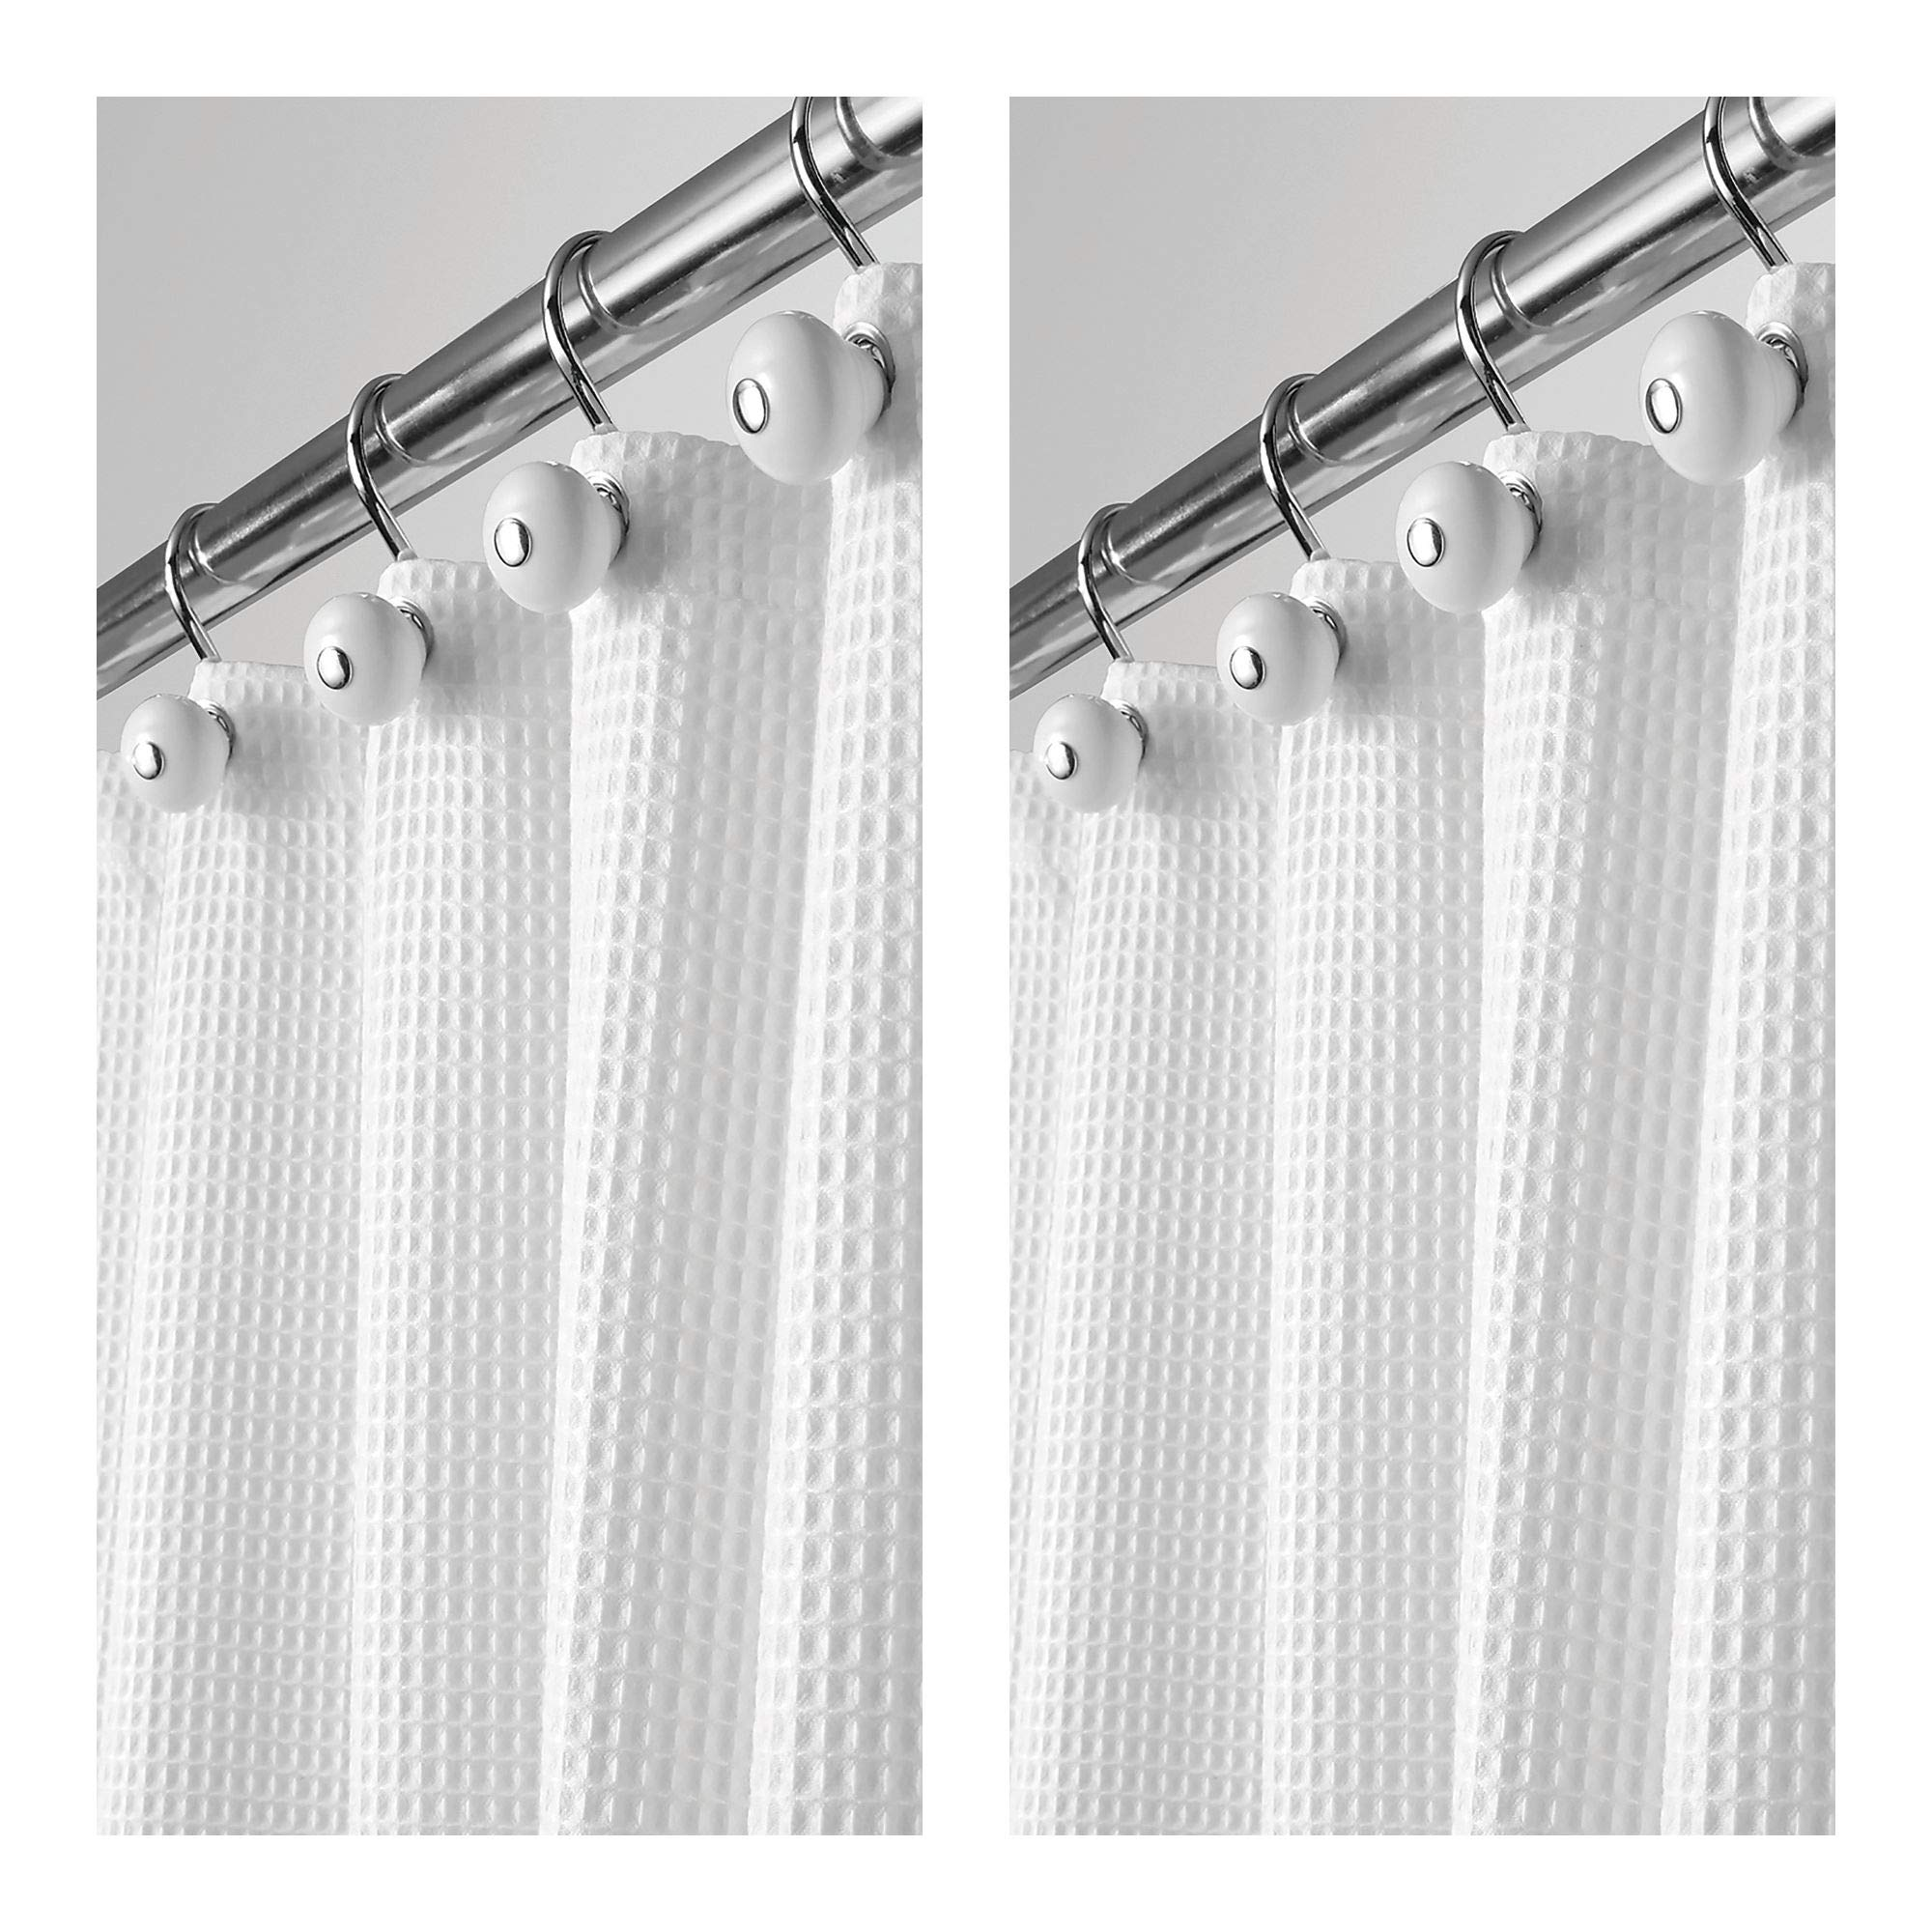 mDesign Long Hotel Quality Polyester/Cotton Blend Fabric Shower Curtain, Rustproof Metal Grommets - Waffle Weave for Bathroom Showers and Bathtubs - 72'' x 84'', Pack of 2, White